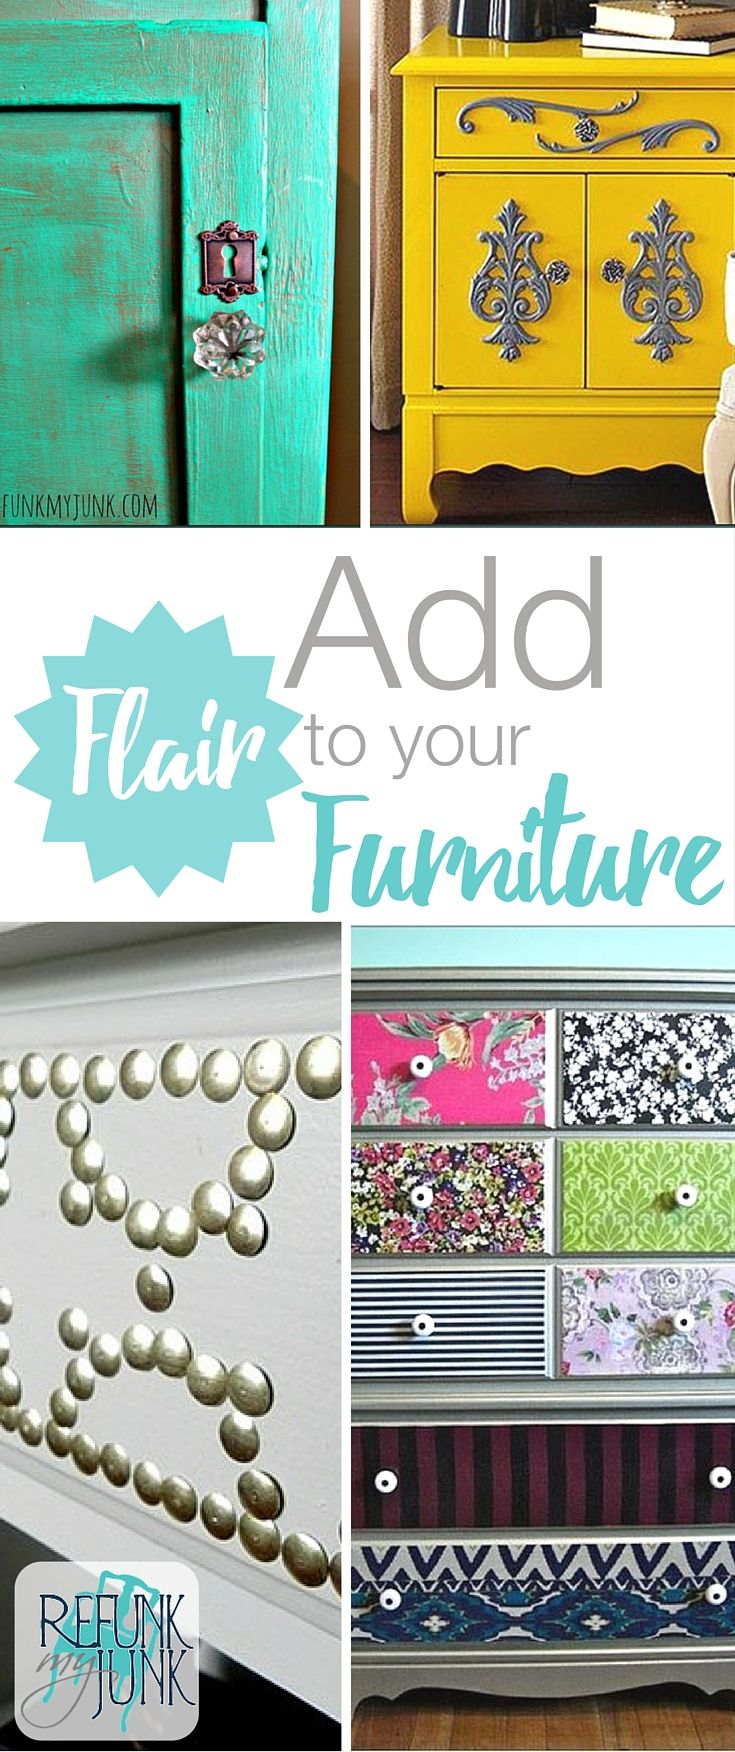 5 Ways to add flair to your furniture and other DIY furniture painting ideas and techniques by Refunk My Junk